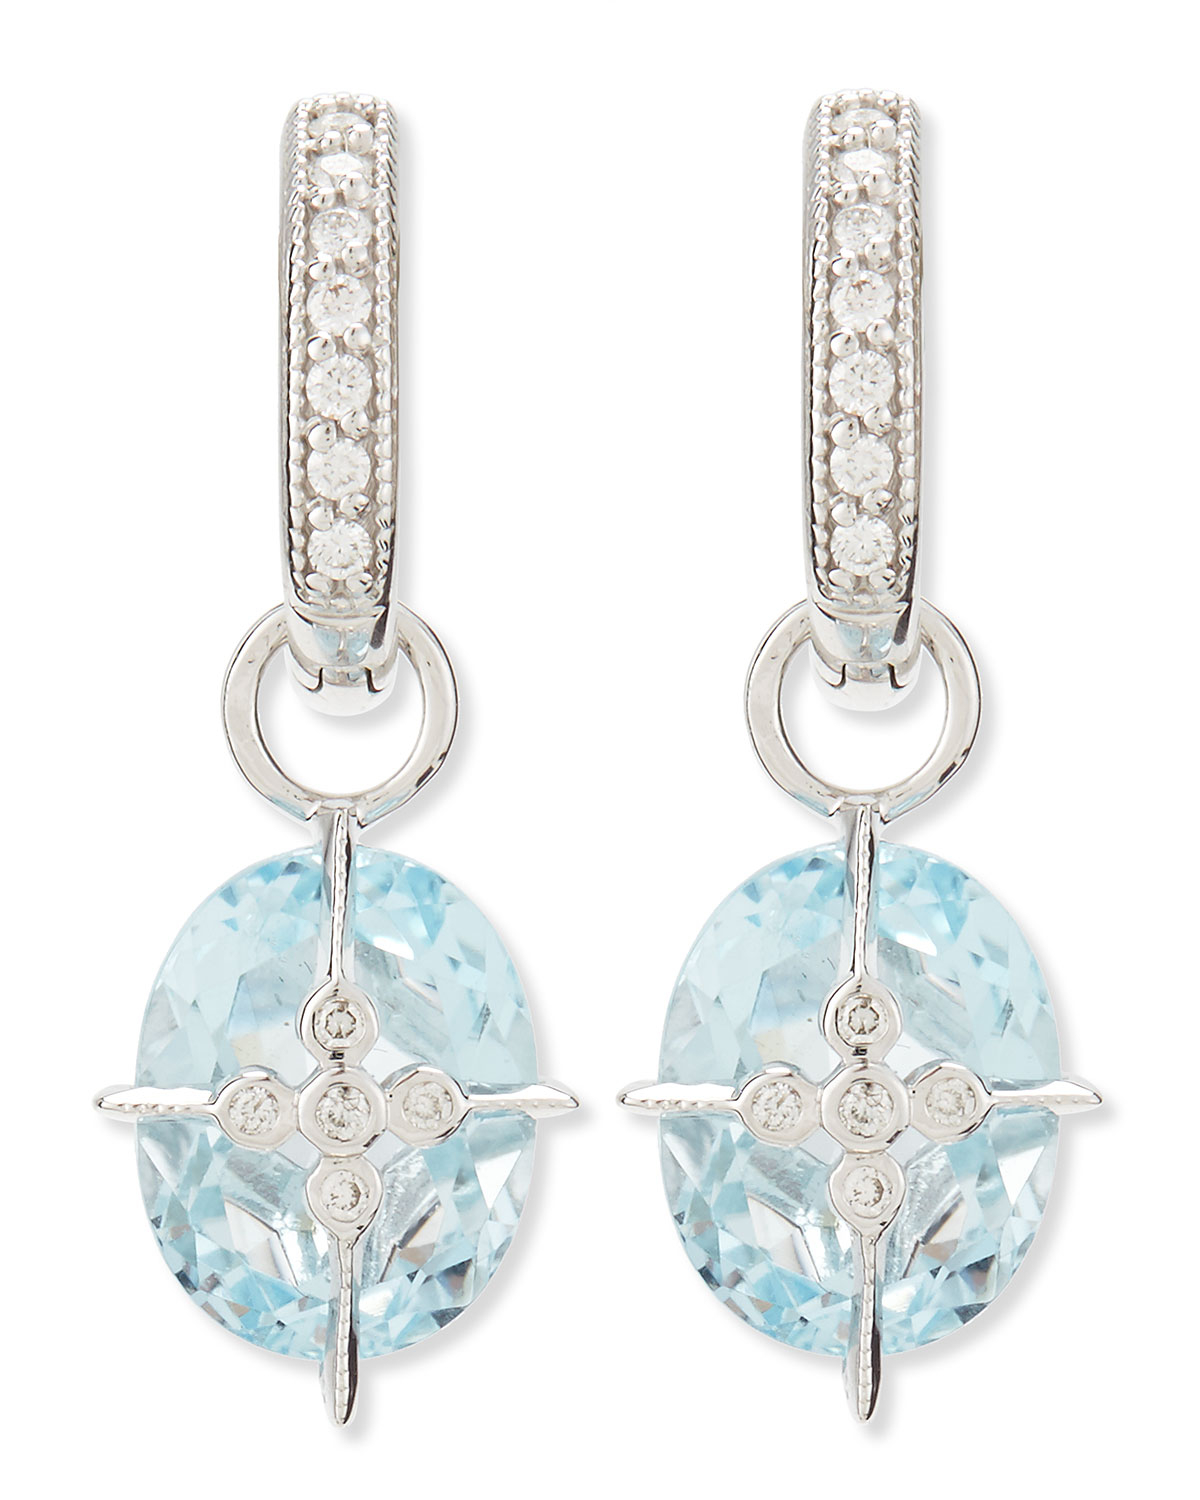 Jude frances Lacey Sky Blue Topaz Earring Charms in Blue